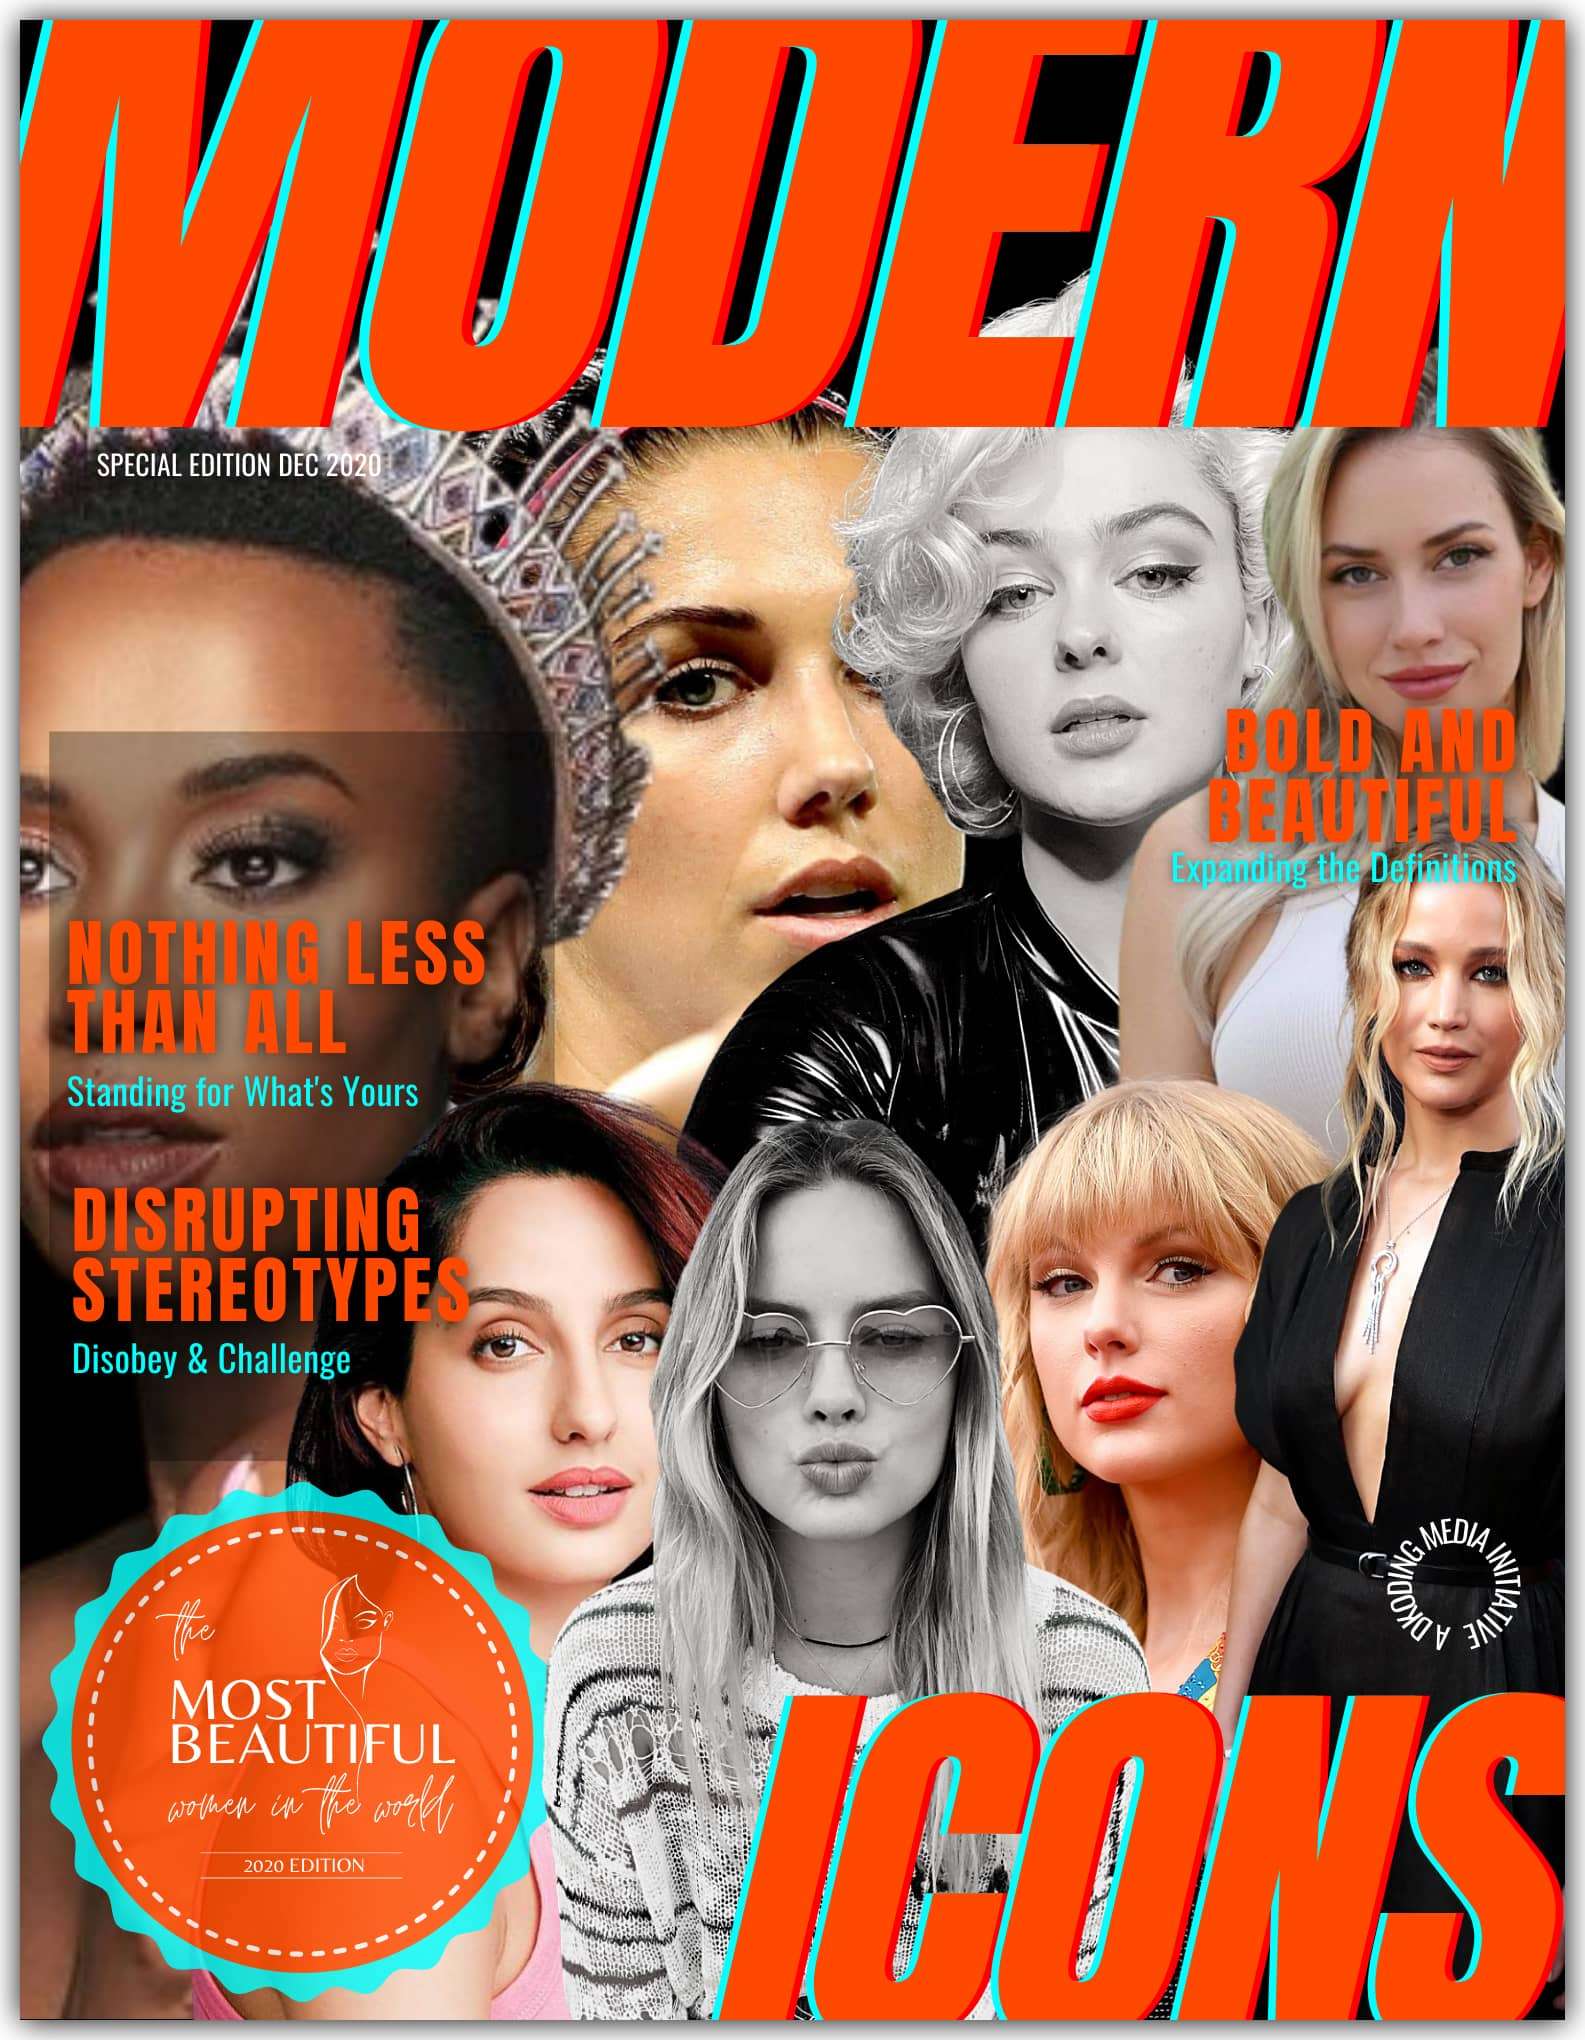 People Who Inspire PWI Most Beautiful Women in the World 2020 - Modern Icons League - Zozibini Tunzi, Nora Fatehi, Taylor Swift, Stefania Ferrario, Jennifer Lawrence, Alex Morgan, Paige Spiranac